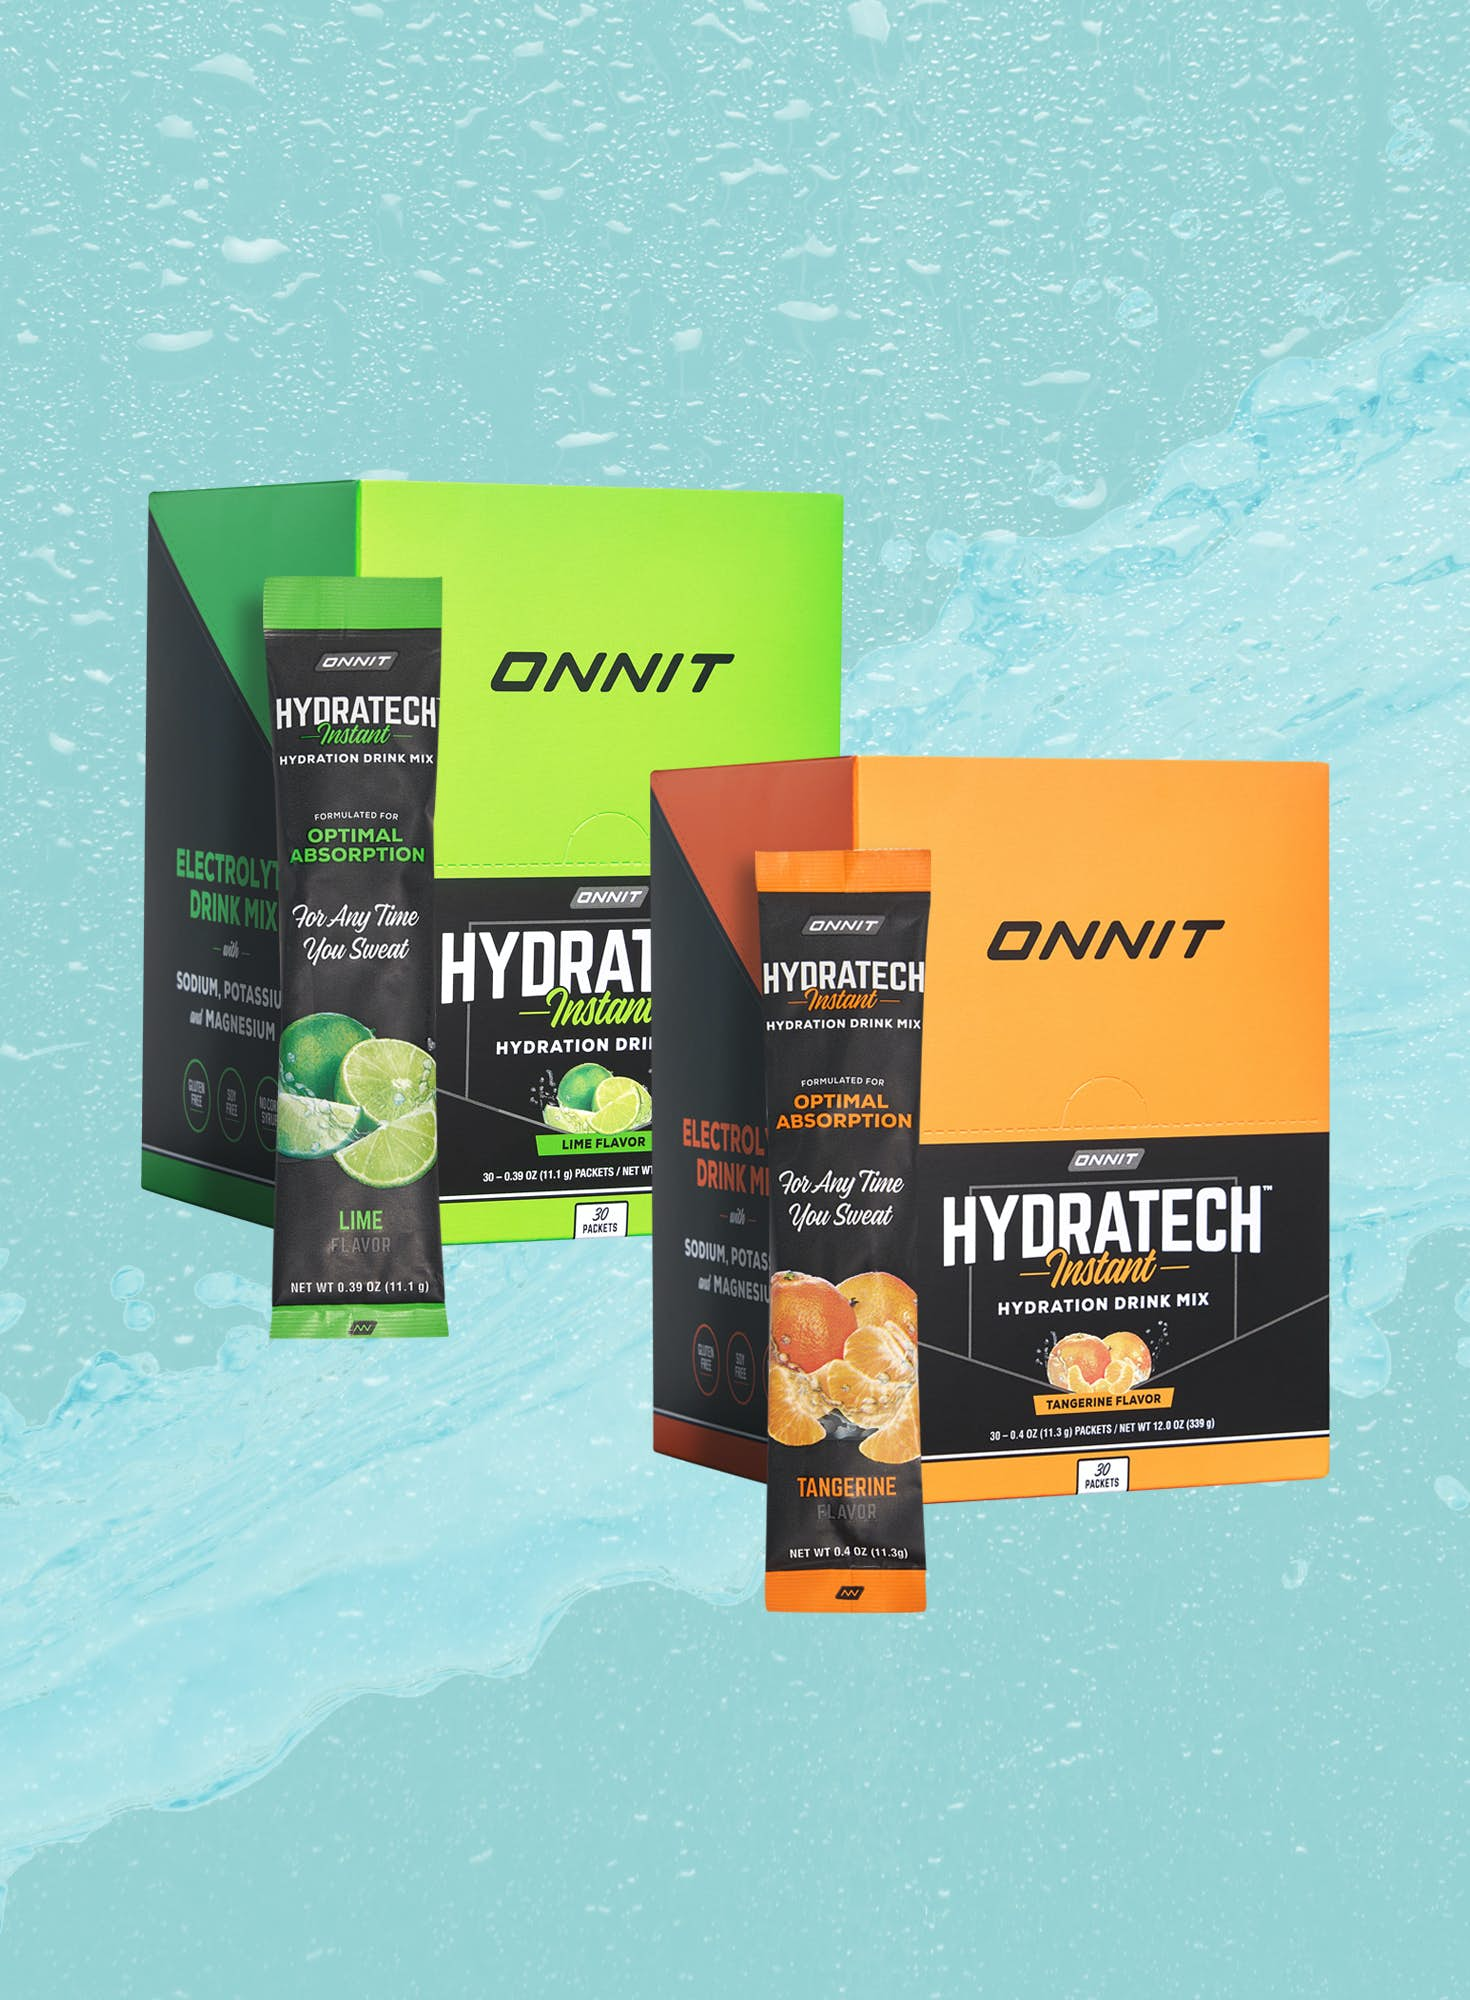 HYDRATech™ Instant Now Available